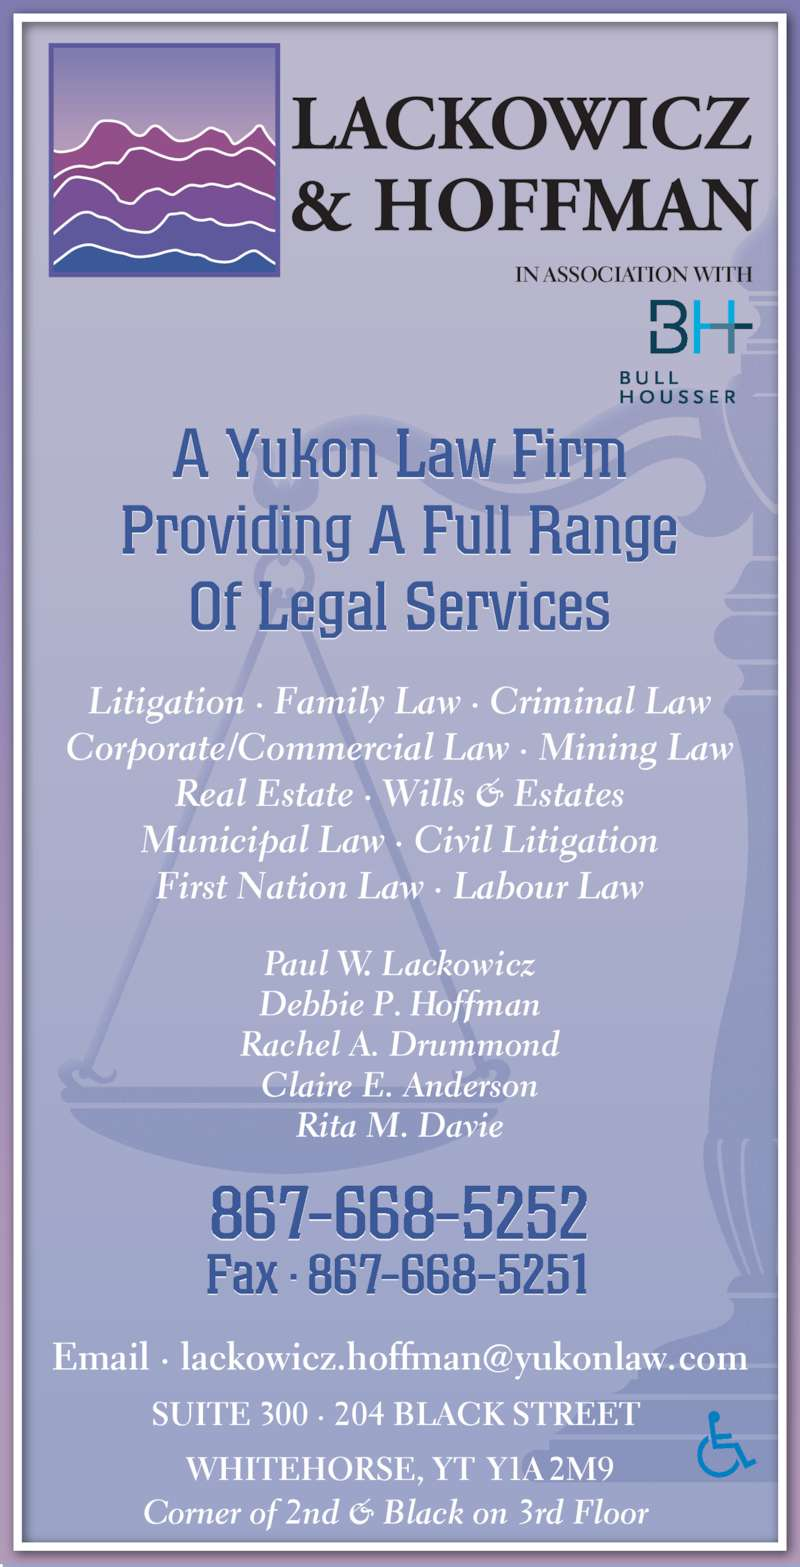 Lackowicz &Hoffman (8676685252) - Display Ad - First Nation Law ? Labour Law Municipal Law ? Civil Litigation Real Estate ? Wills & Estates Debbie P. Hoffman 867-668-5252 Paul W. Lackowicz Fax ? 867-668-5251 Rita M. Davie Claire E. Anderson WHITEHORSE, YT Y1A 2M9 SUITE 300 ? 204 BLACK STREET  Rachel A. Drummond Litigation ? Family Law ? Criminal Law Corporate/Commercial Law ? Mining Law Corner of 2nd & Black on 3rd Floor  A Yukon Law Firm Providing A Full Range IN ASSOCIATION WITH Of Legal Services